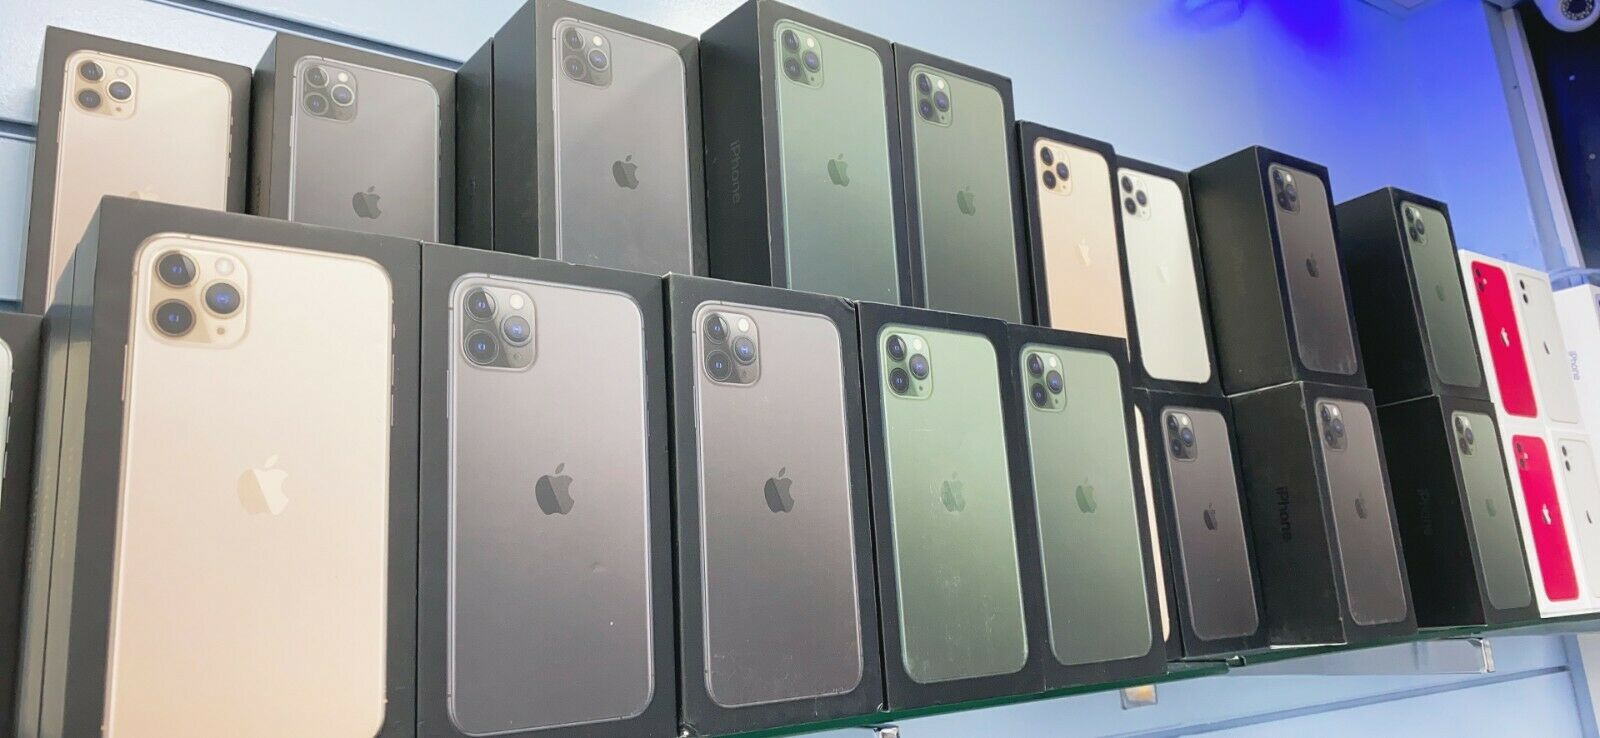 Offer for Apple iPhone 11, 11 Pro and 11 Pro Max